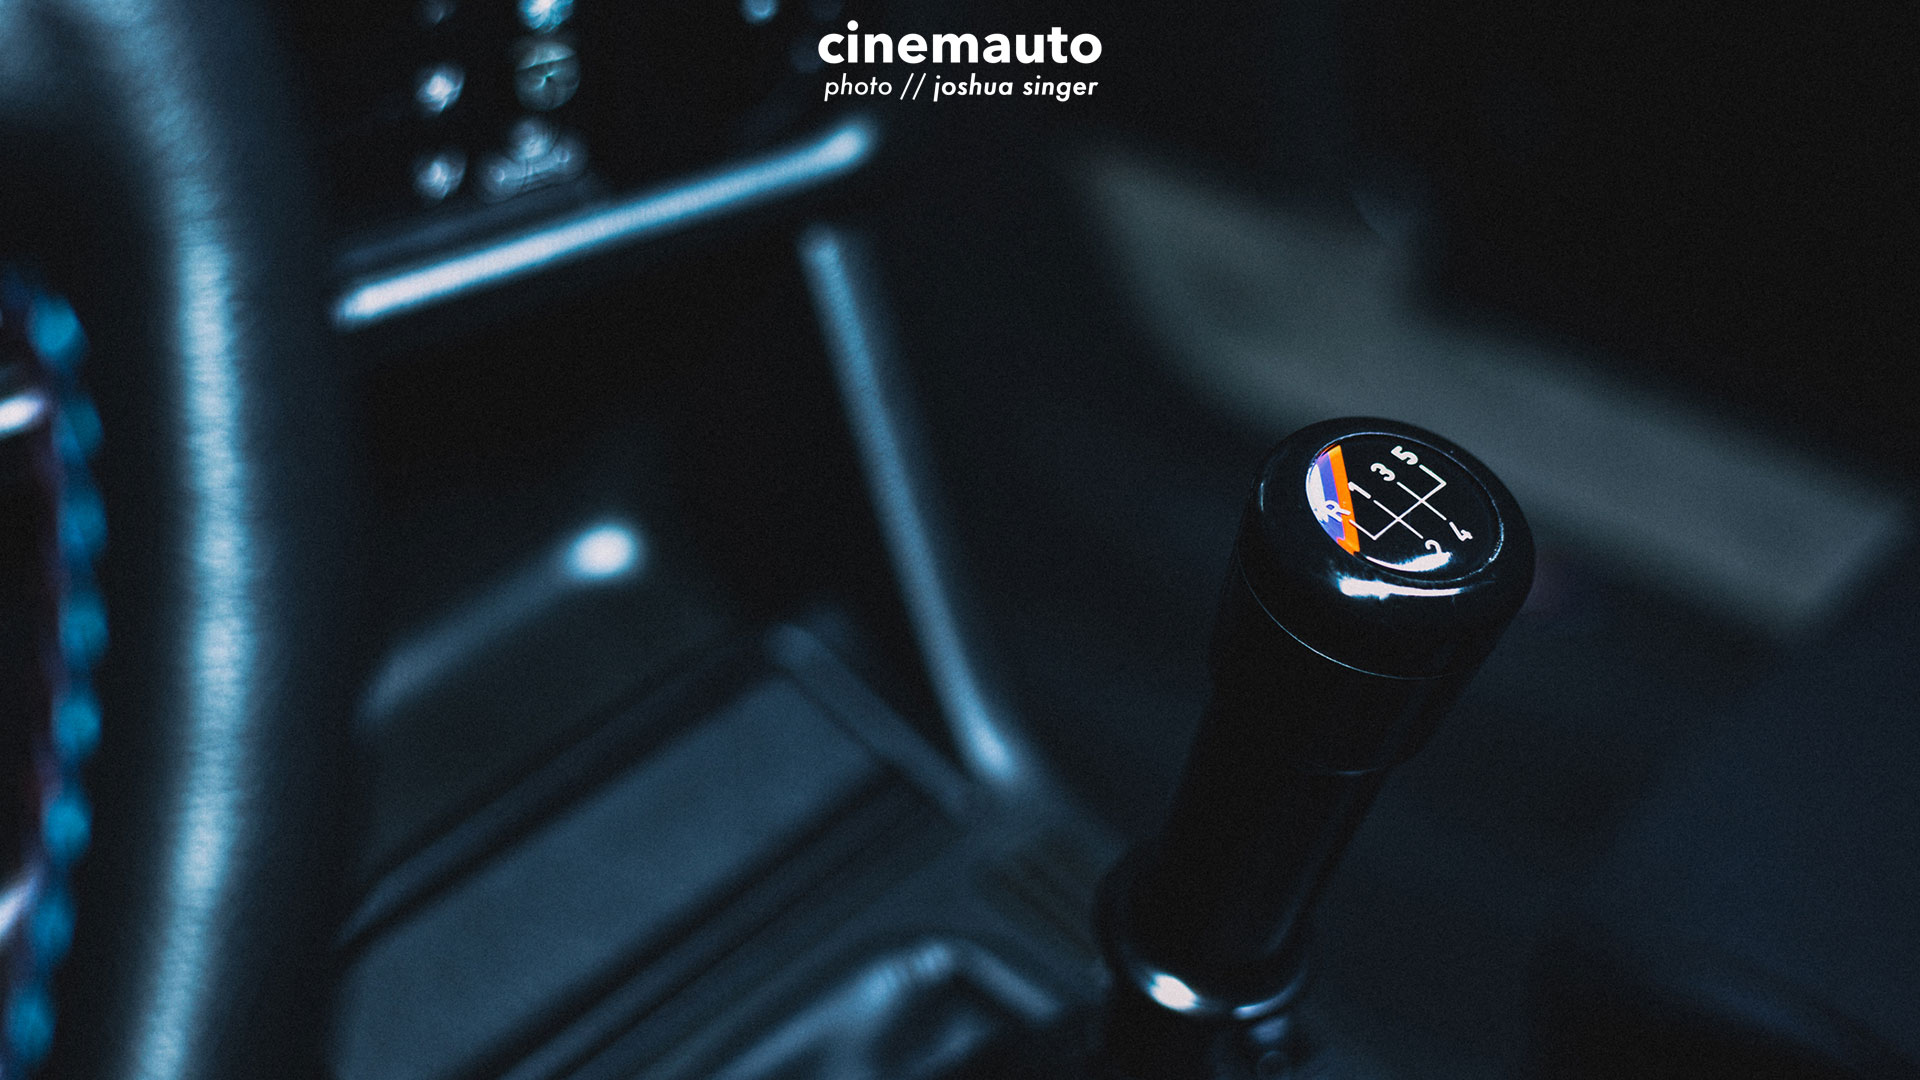 cinemauto-wichita-automotive-videography-midwest-car-cinematography-kk10.jpg